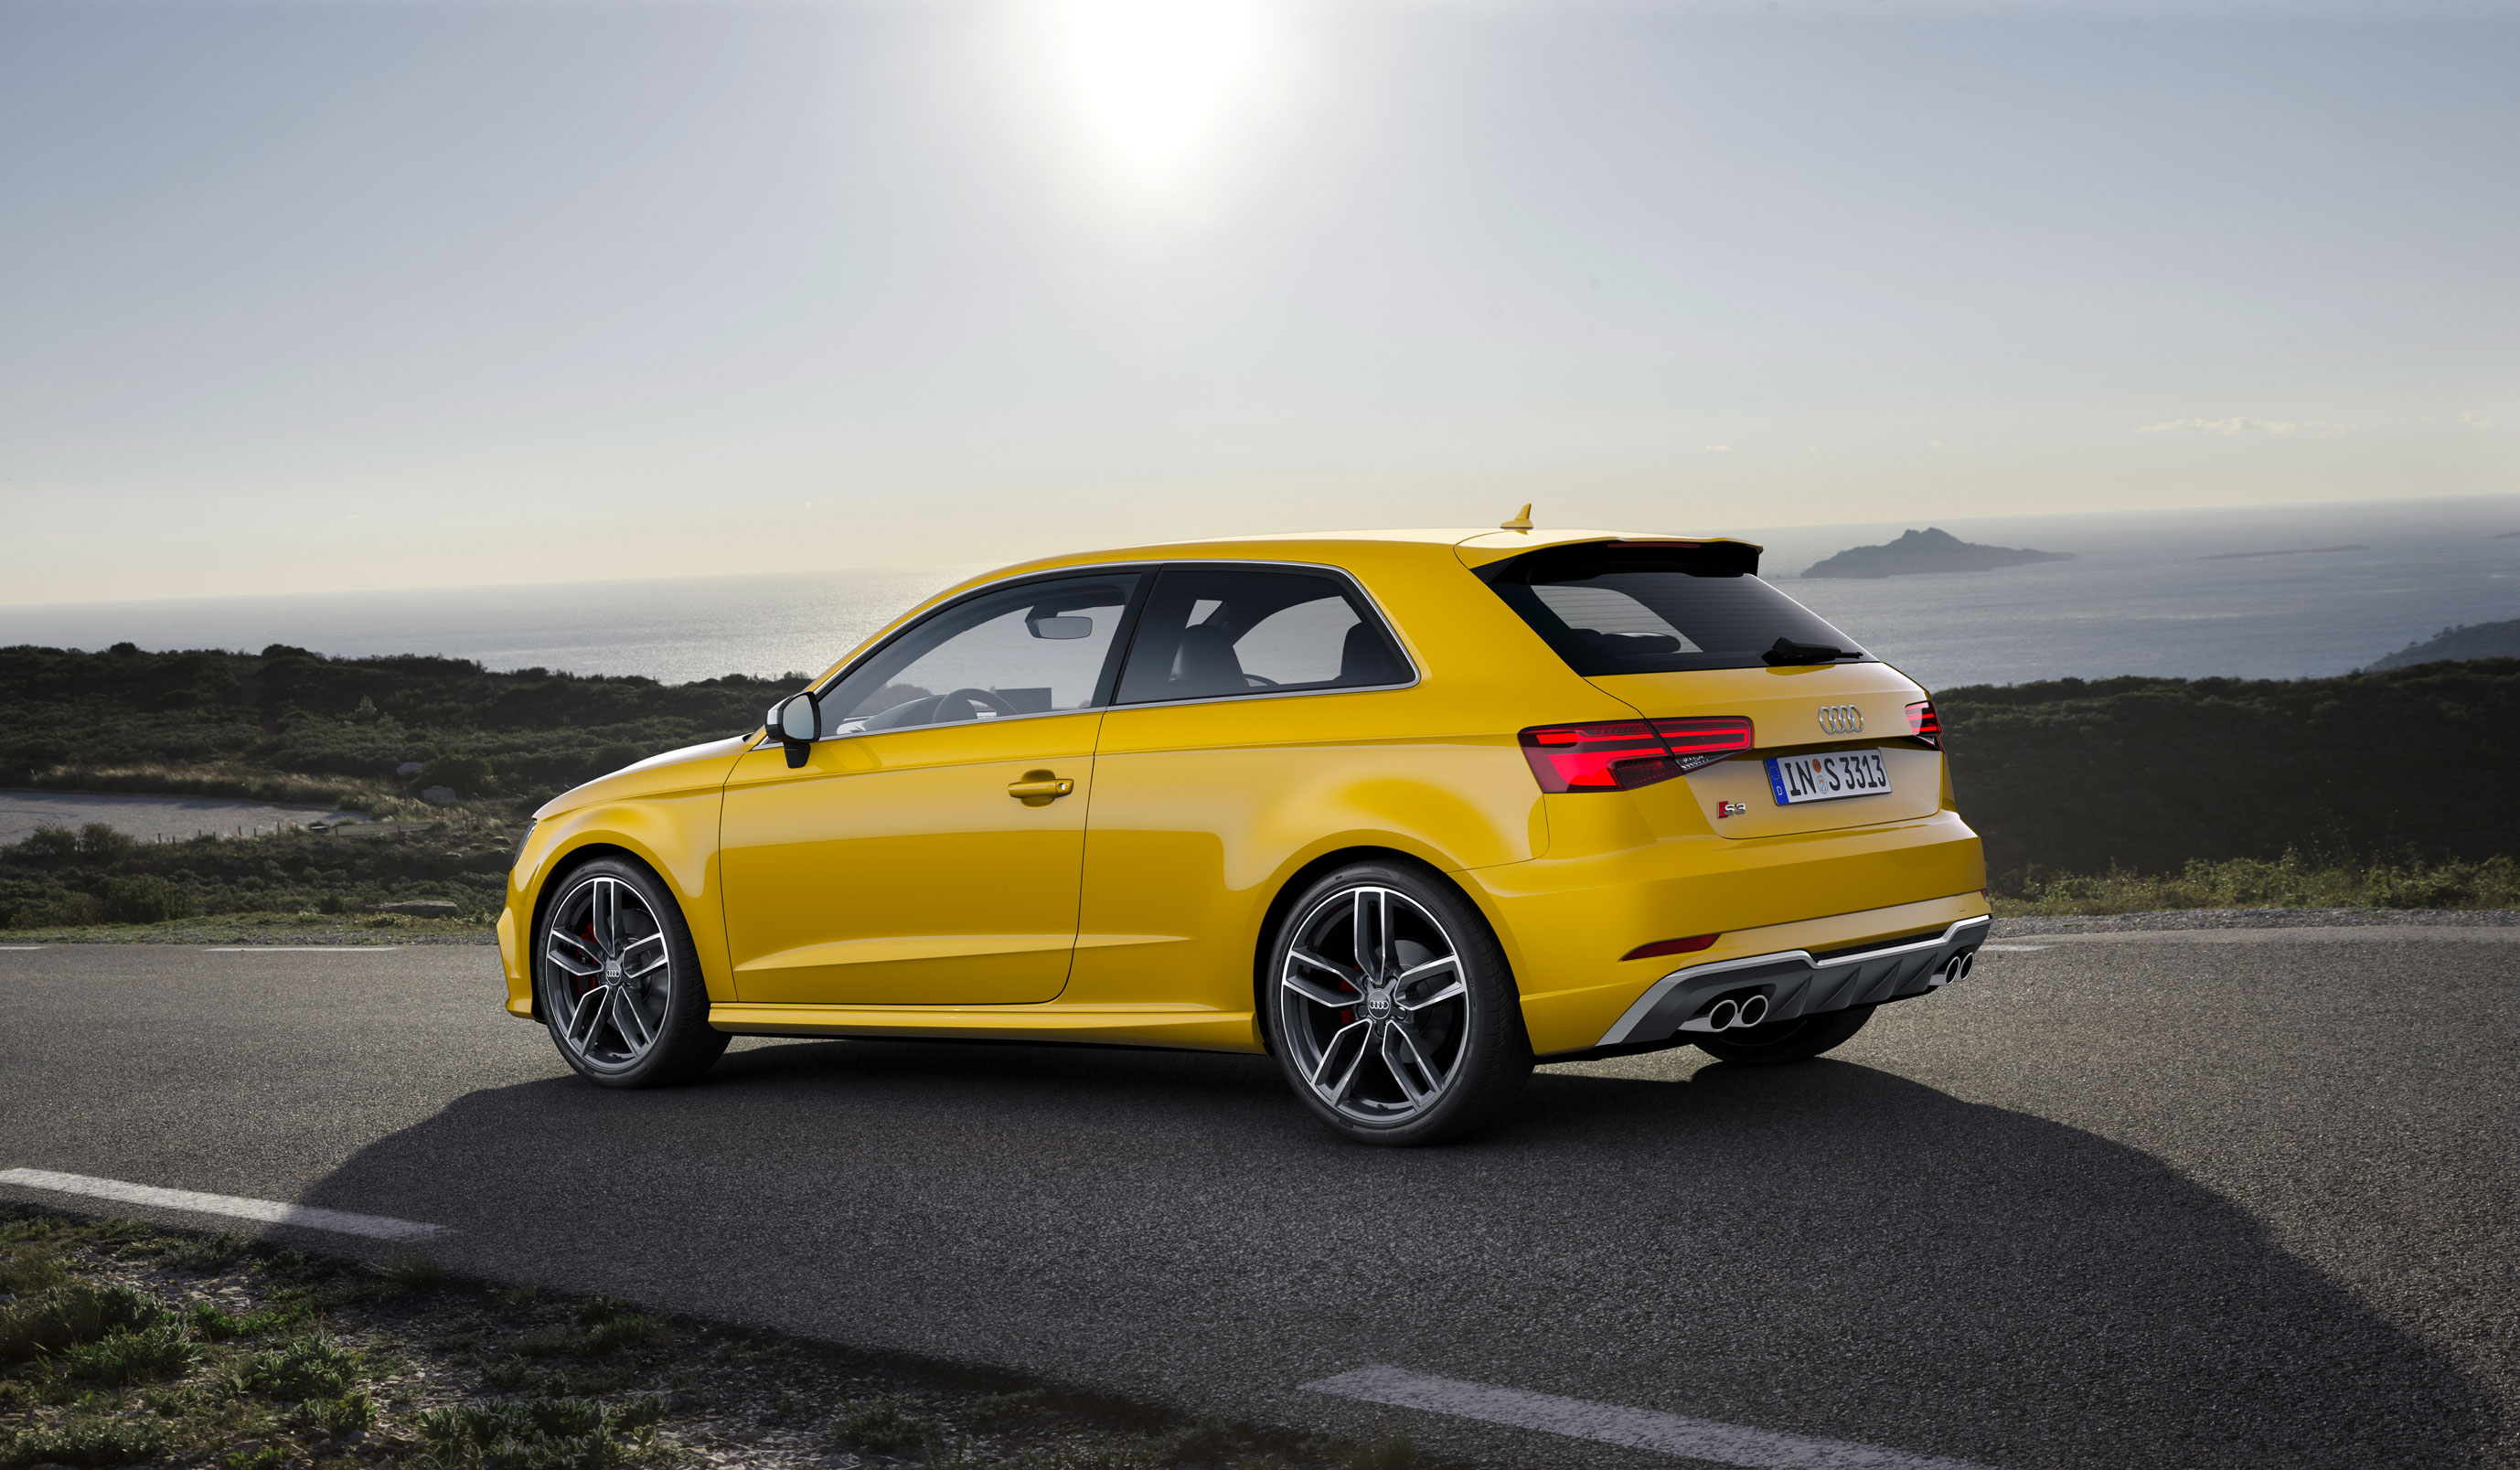 Audi S3 review, specifications, price and 0-60 time | Evo